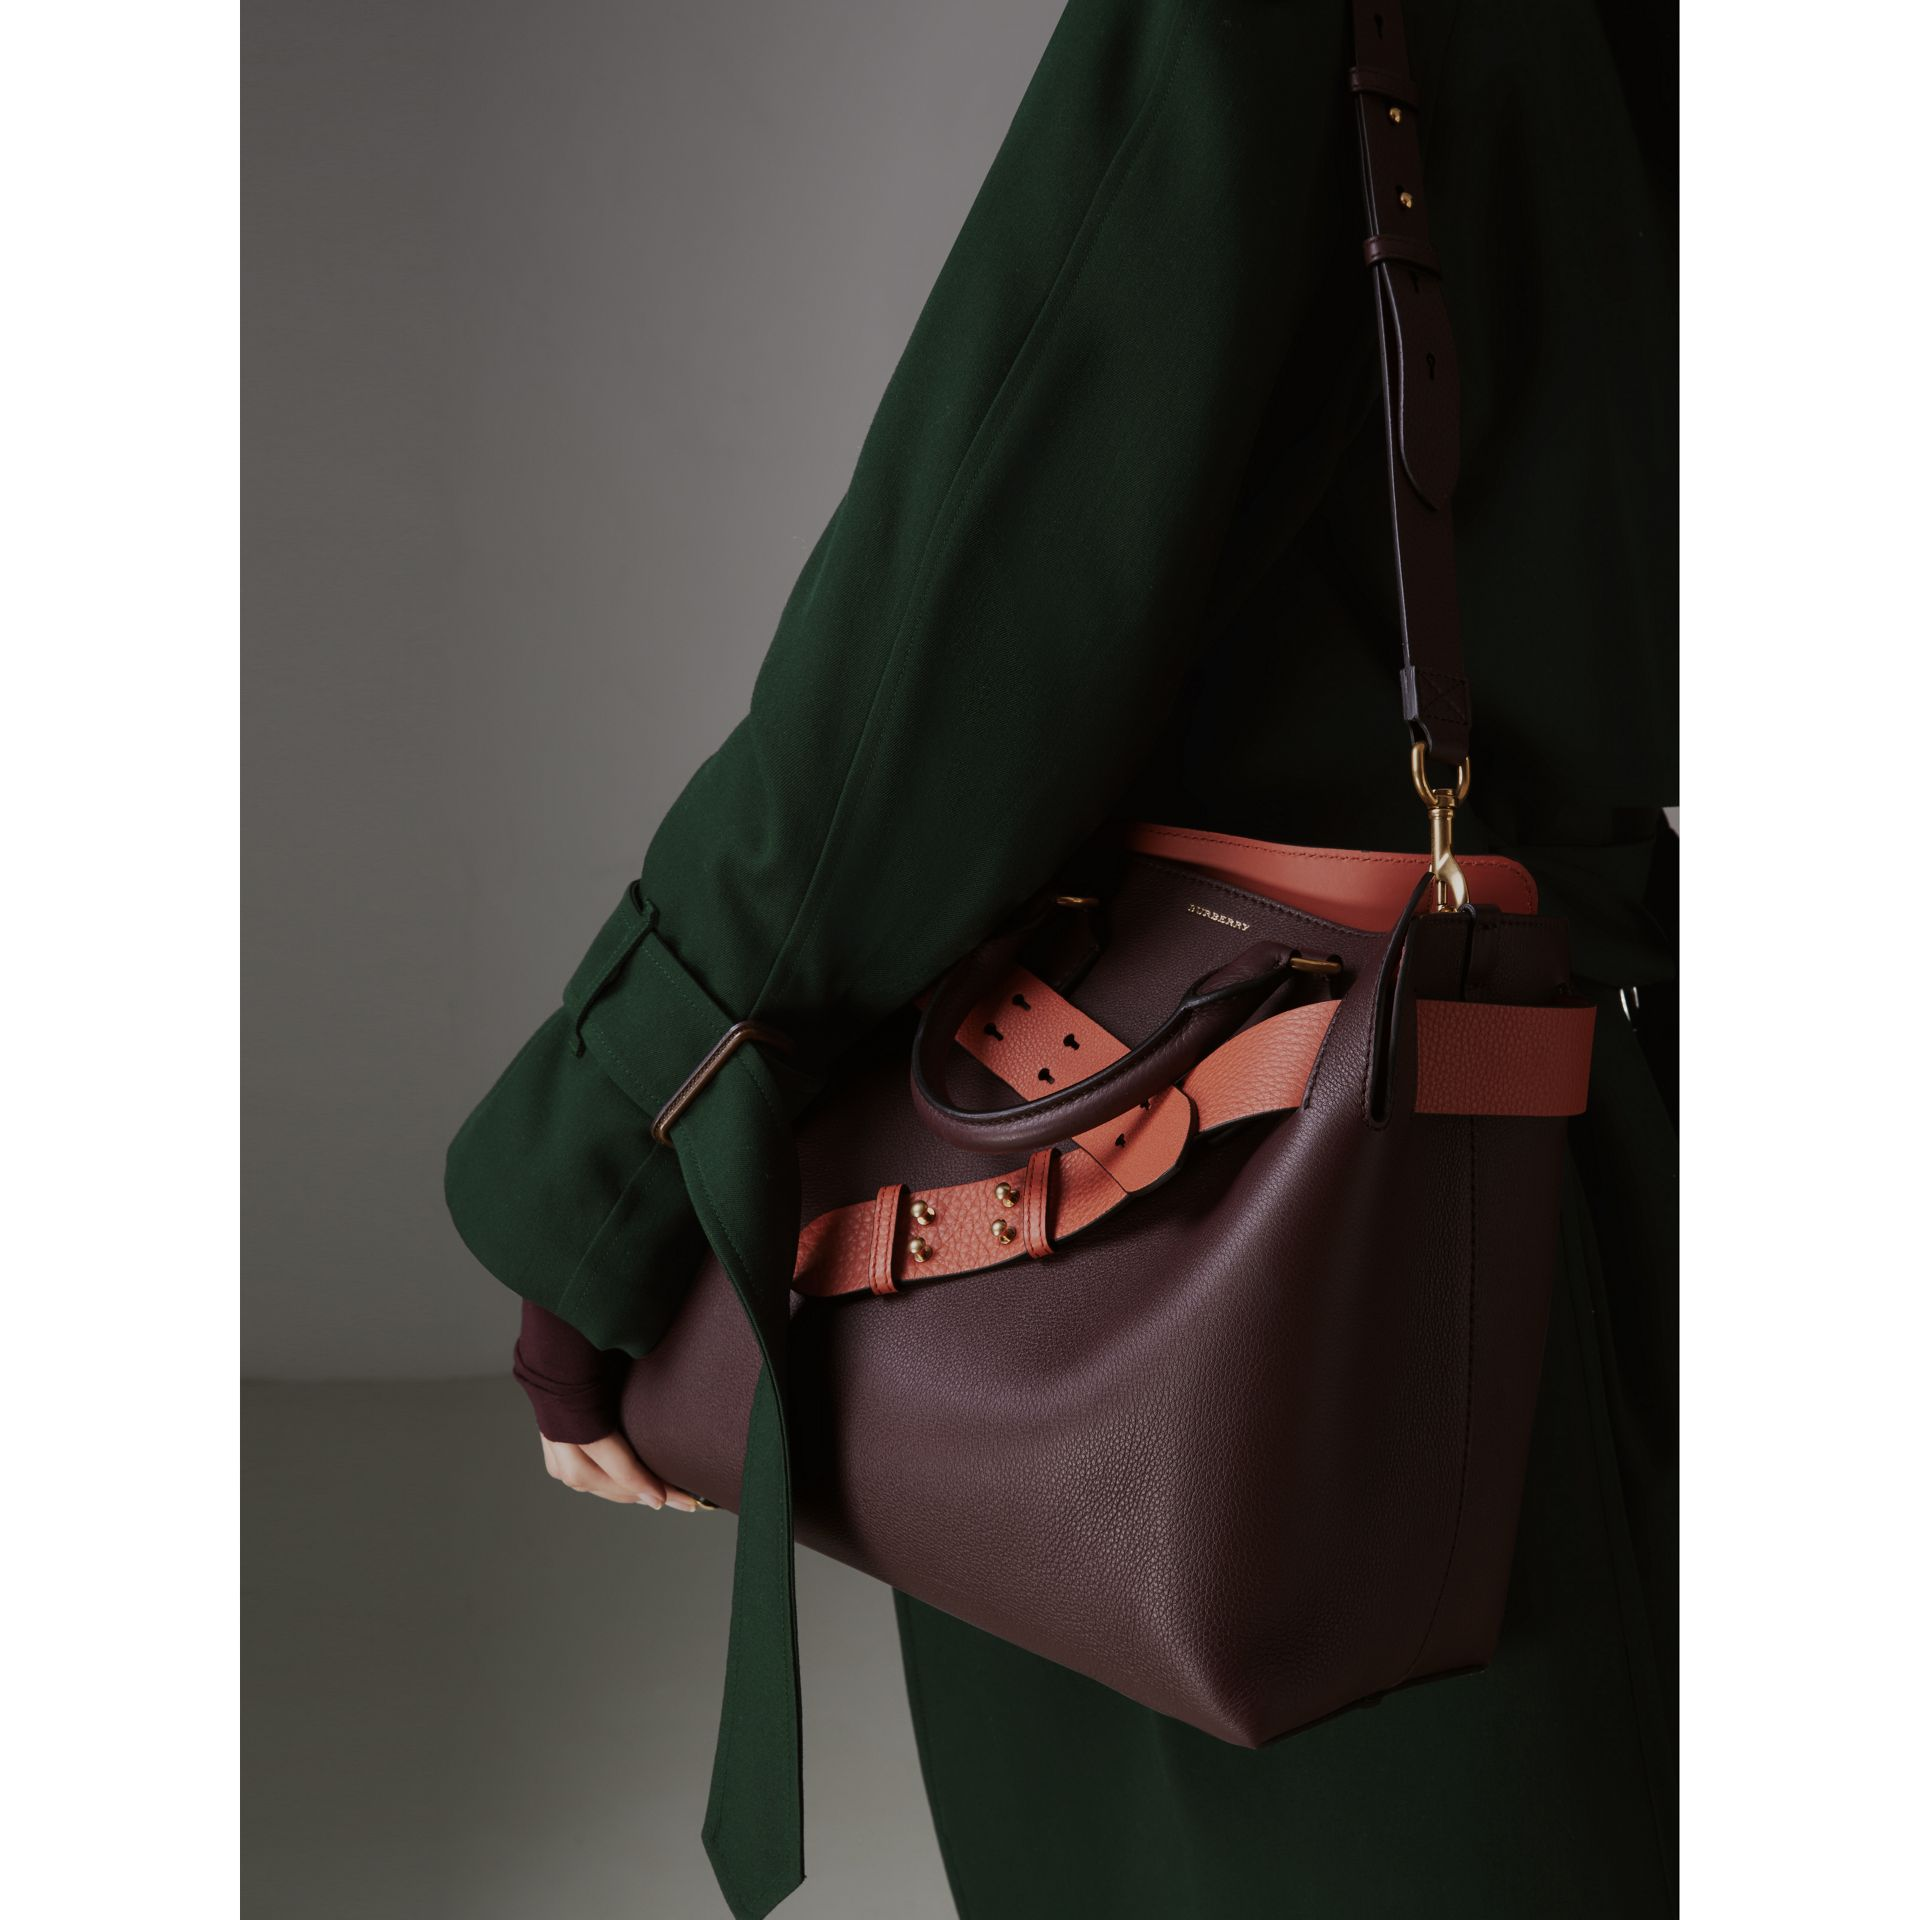 Sac The Belt moyen en cuir (Bordeaux Intense) - Femme | Burberry - photo de la galerie 3